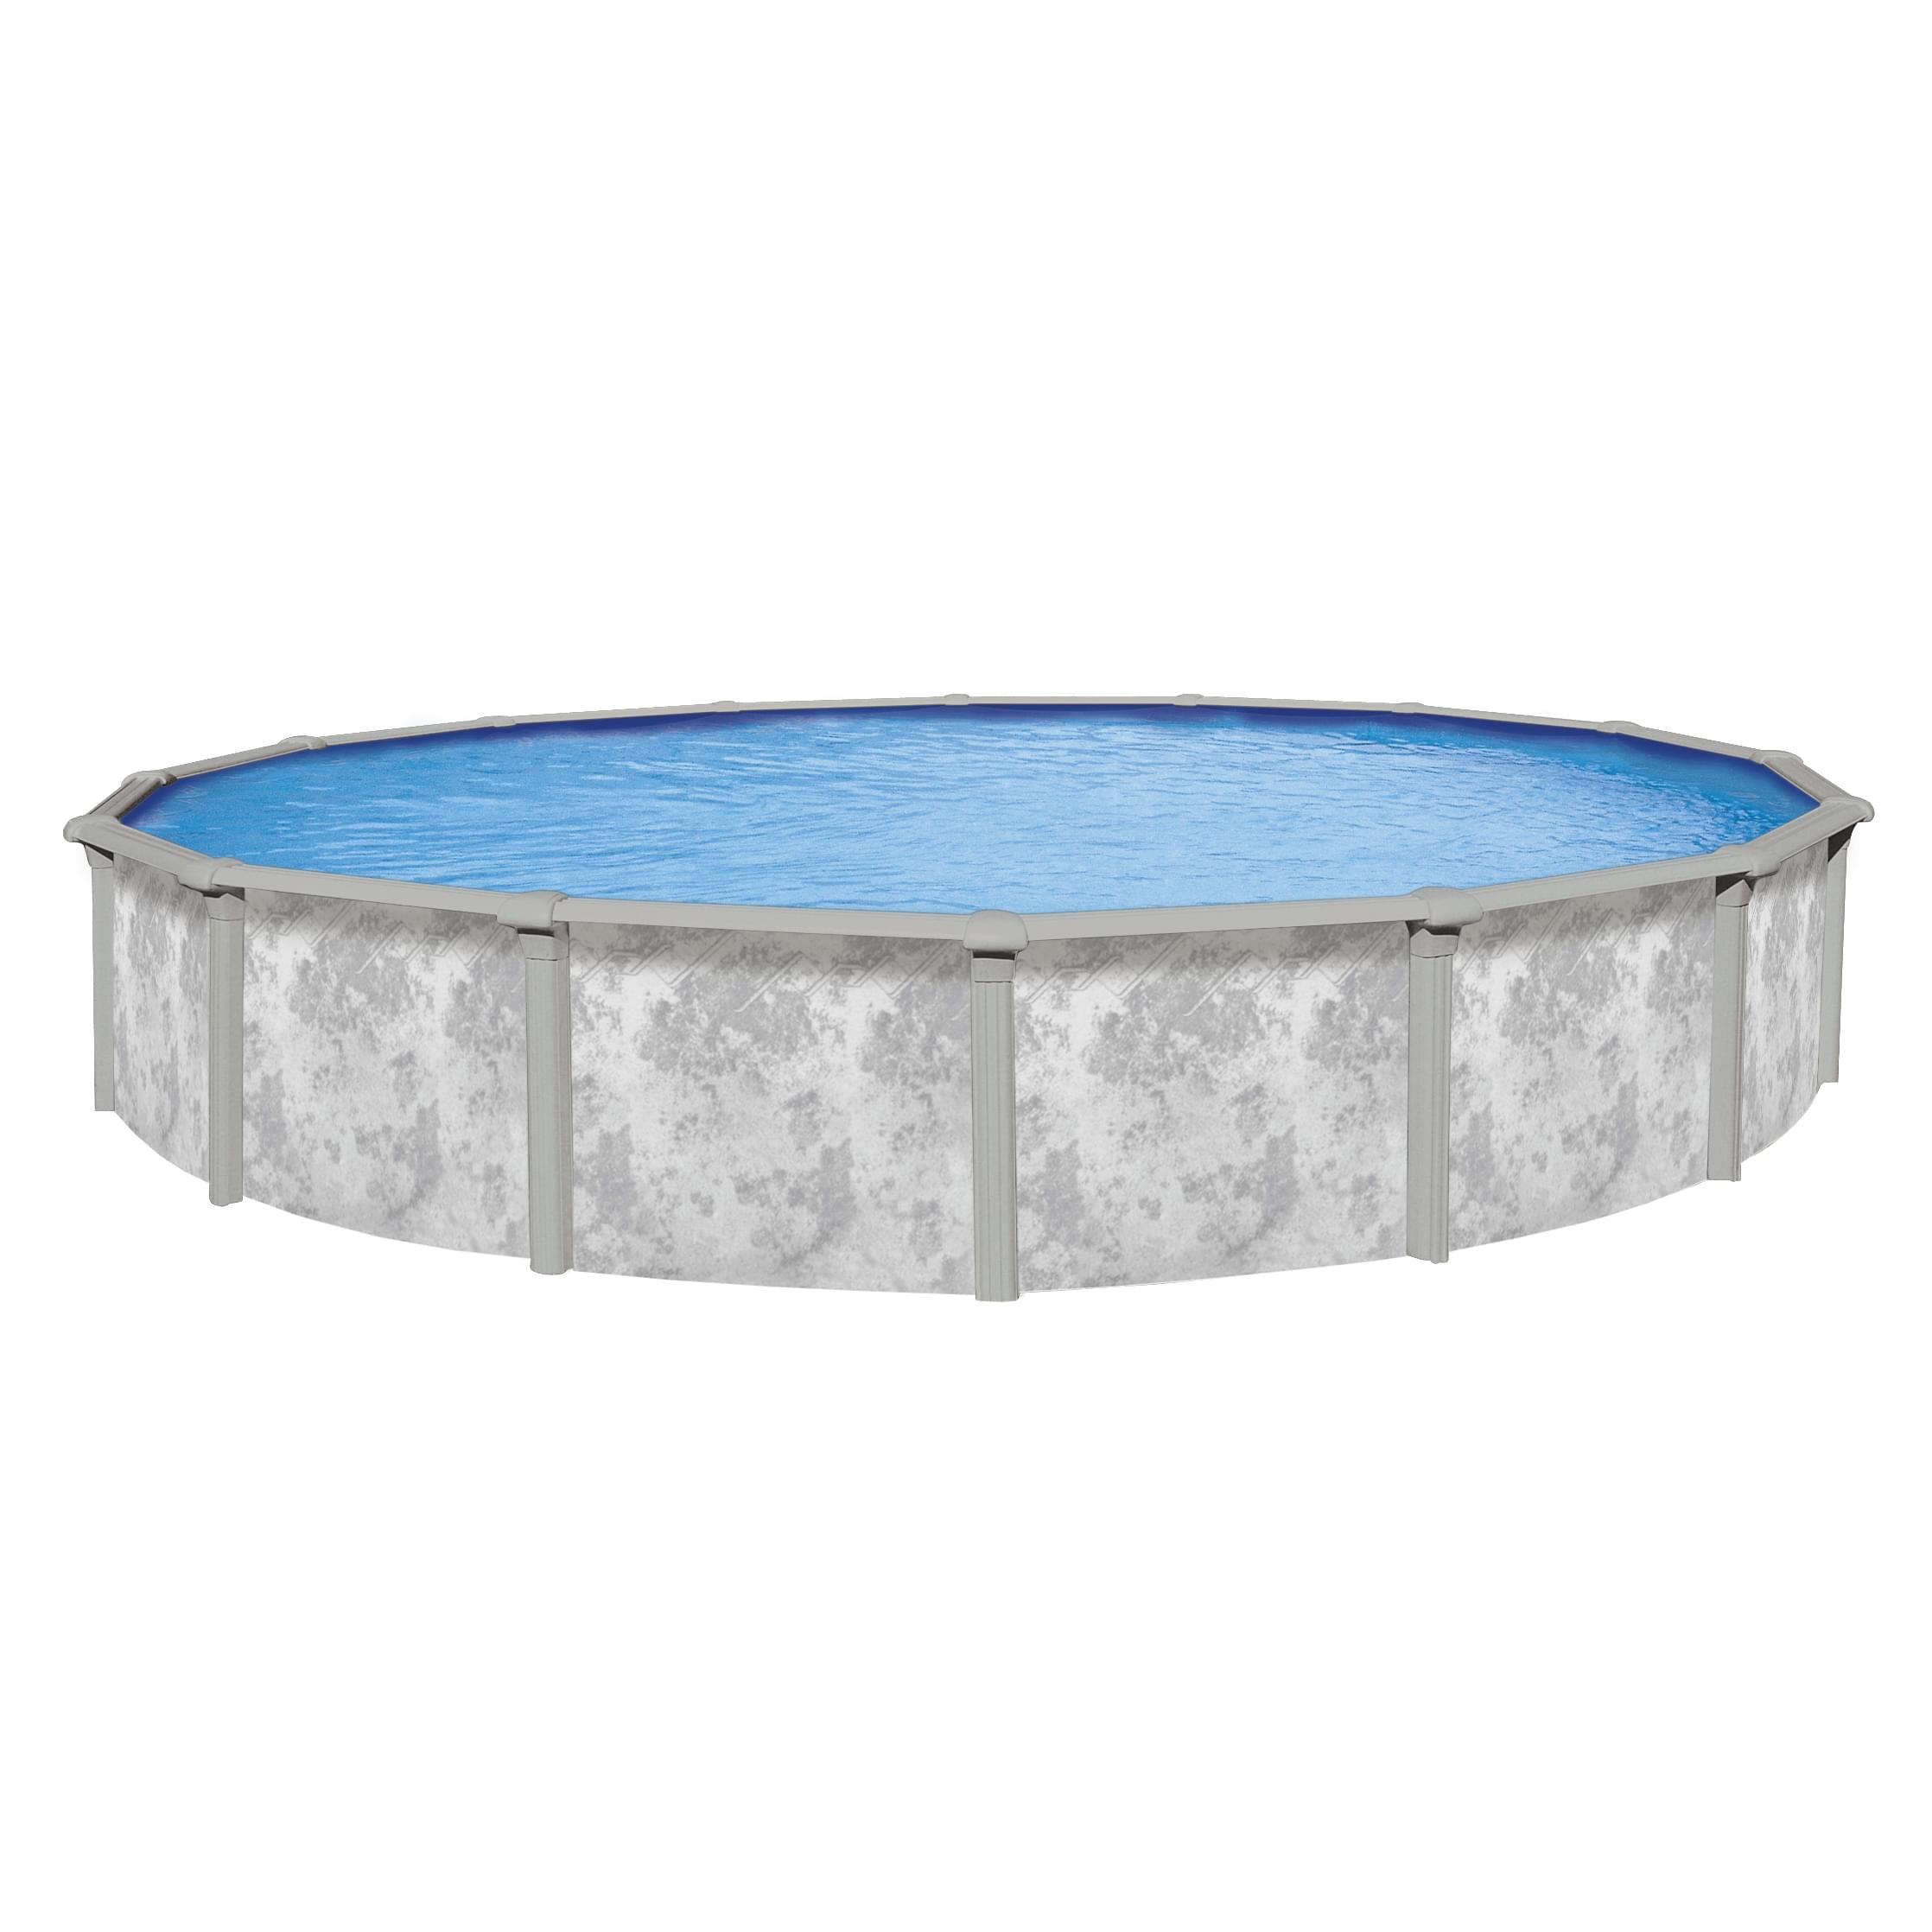 18 Ft Round J3000 Above Ground Pool With 52 Inch Renaissance Wall Pool Supplies Canada